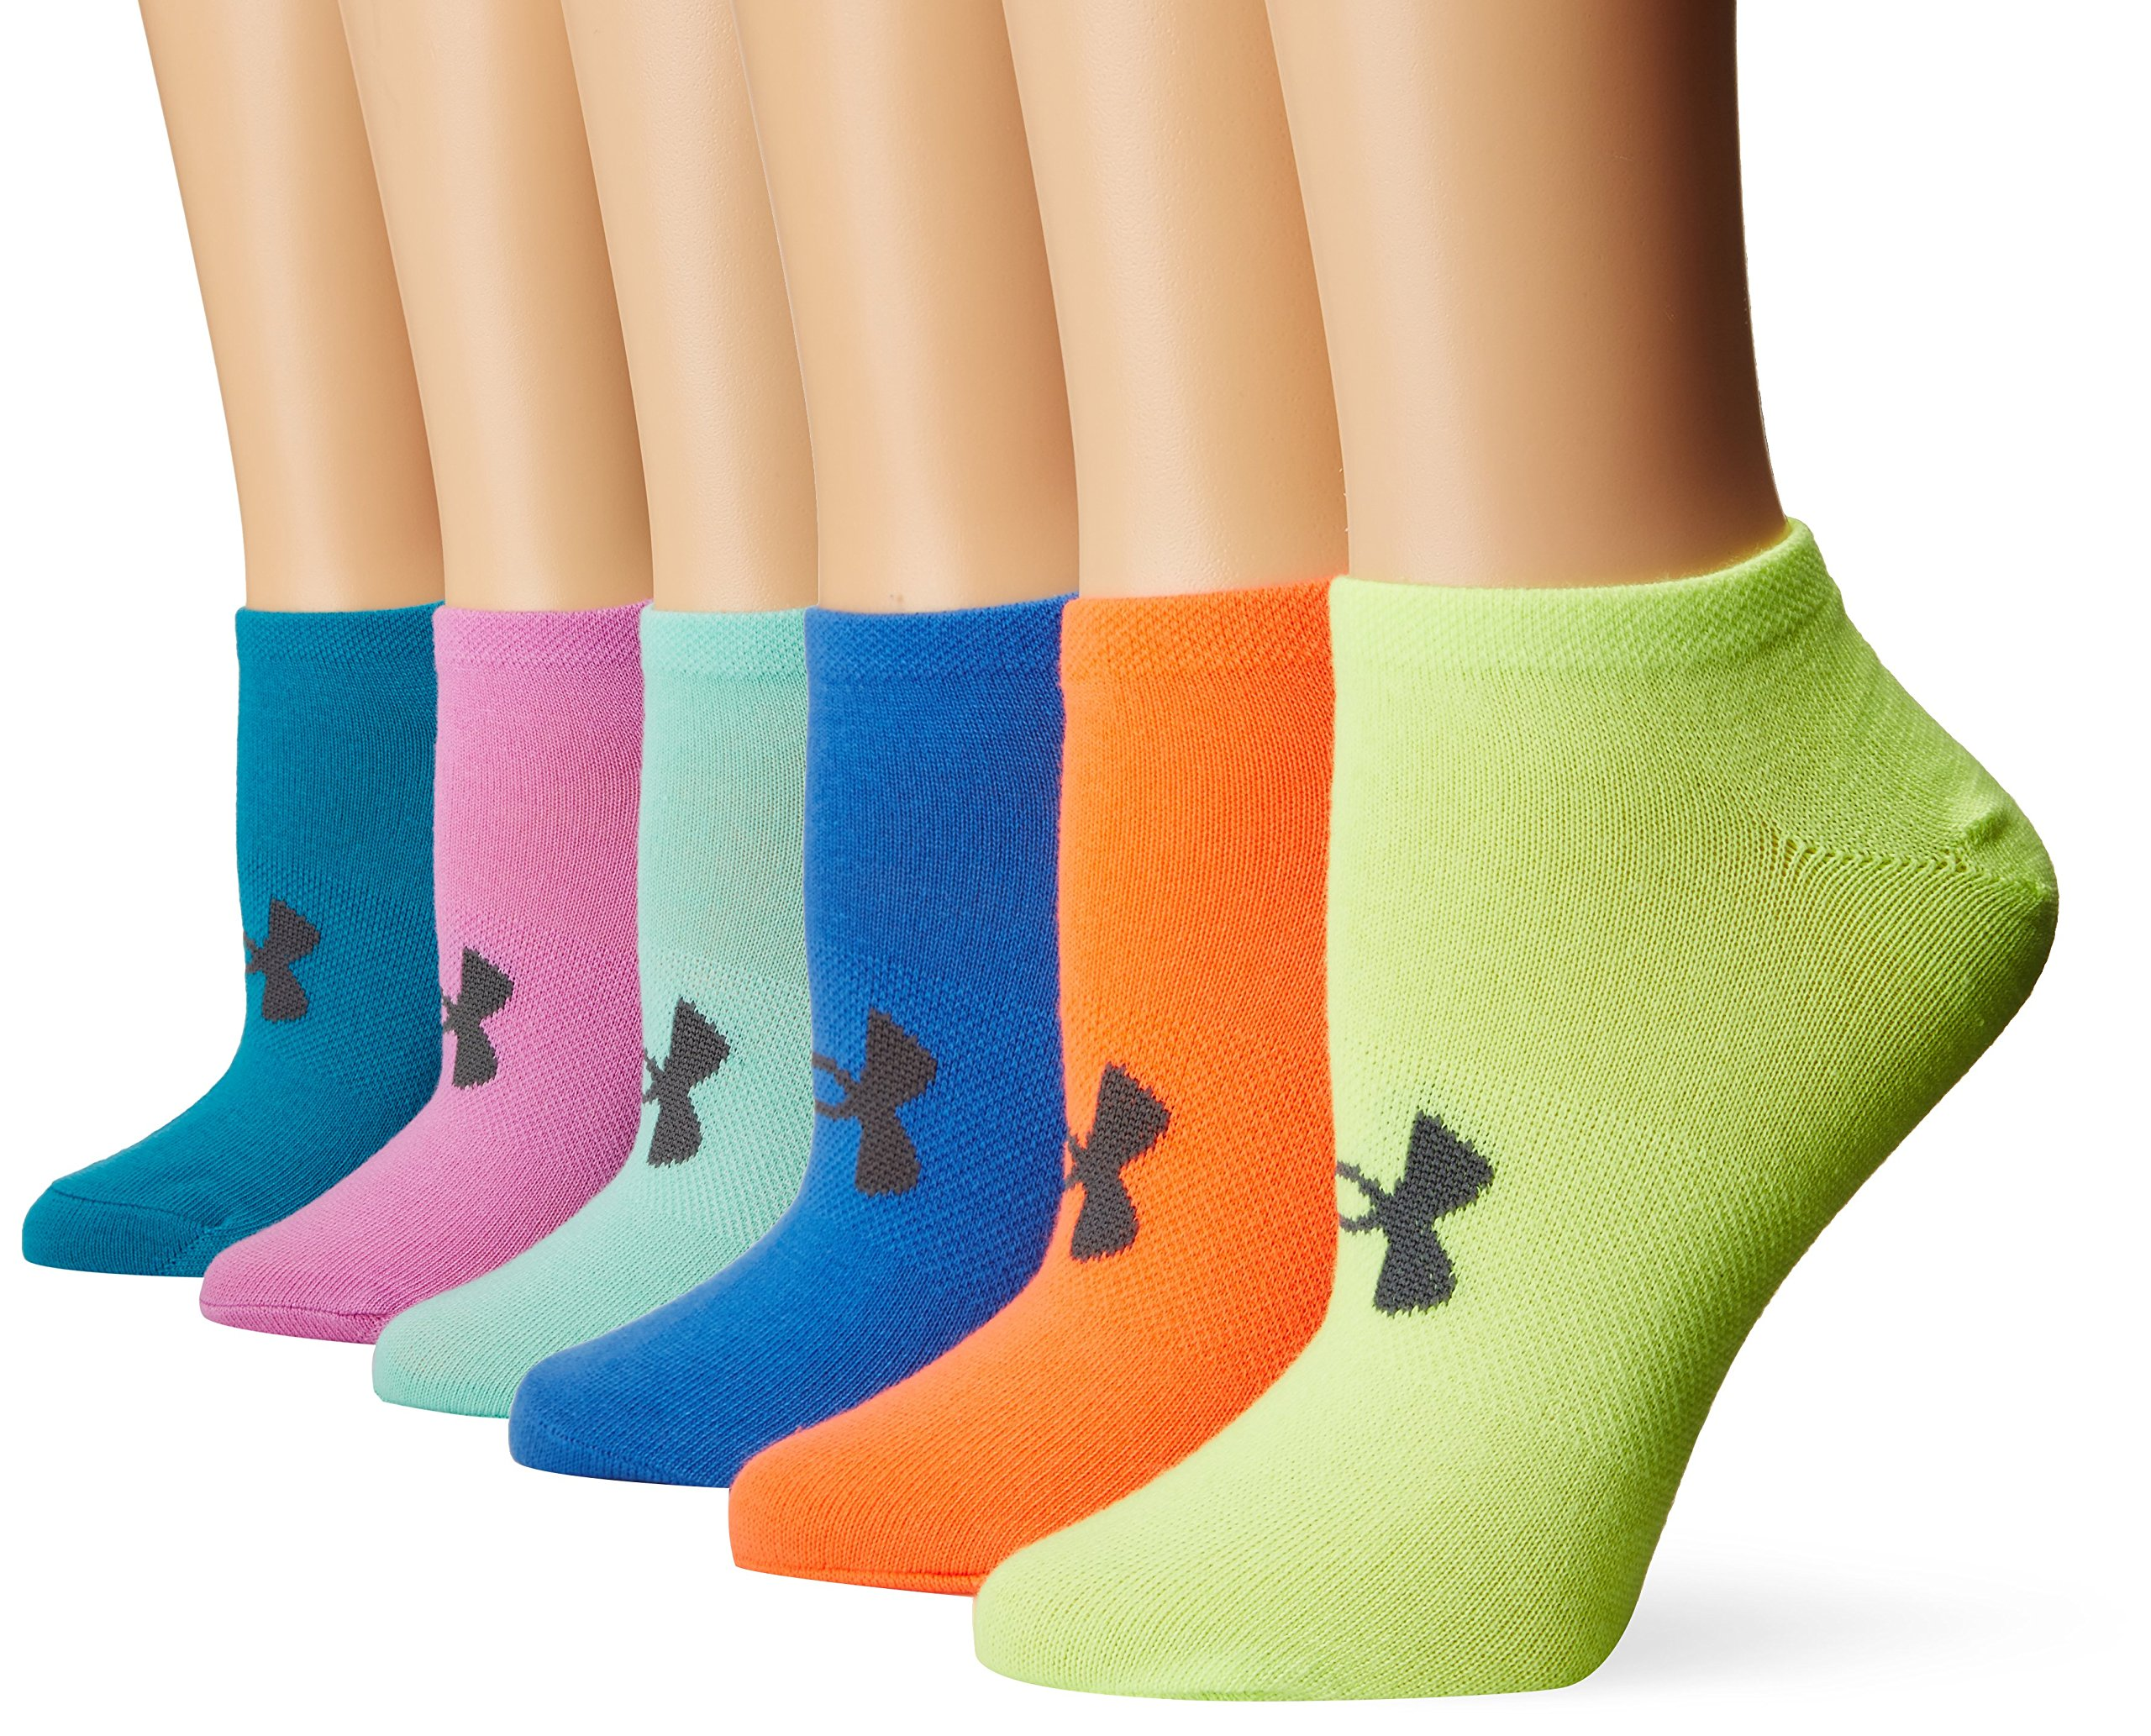 Under Armour Women's Essential No Show Socks (6 Pack), Multicolor, Medium by Under Armour